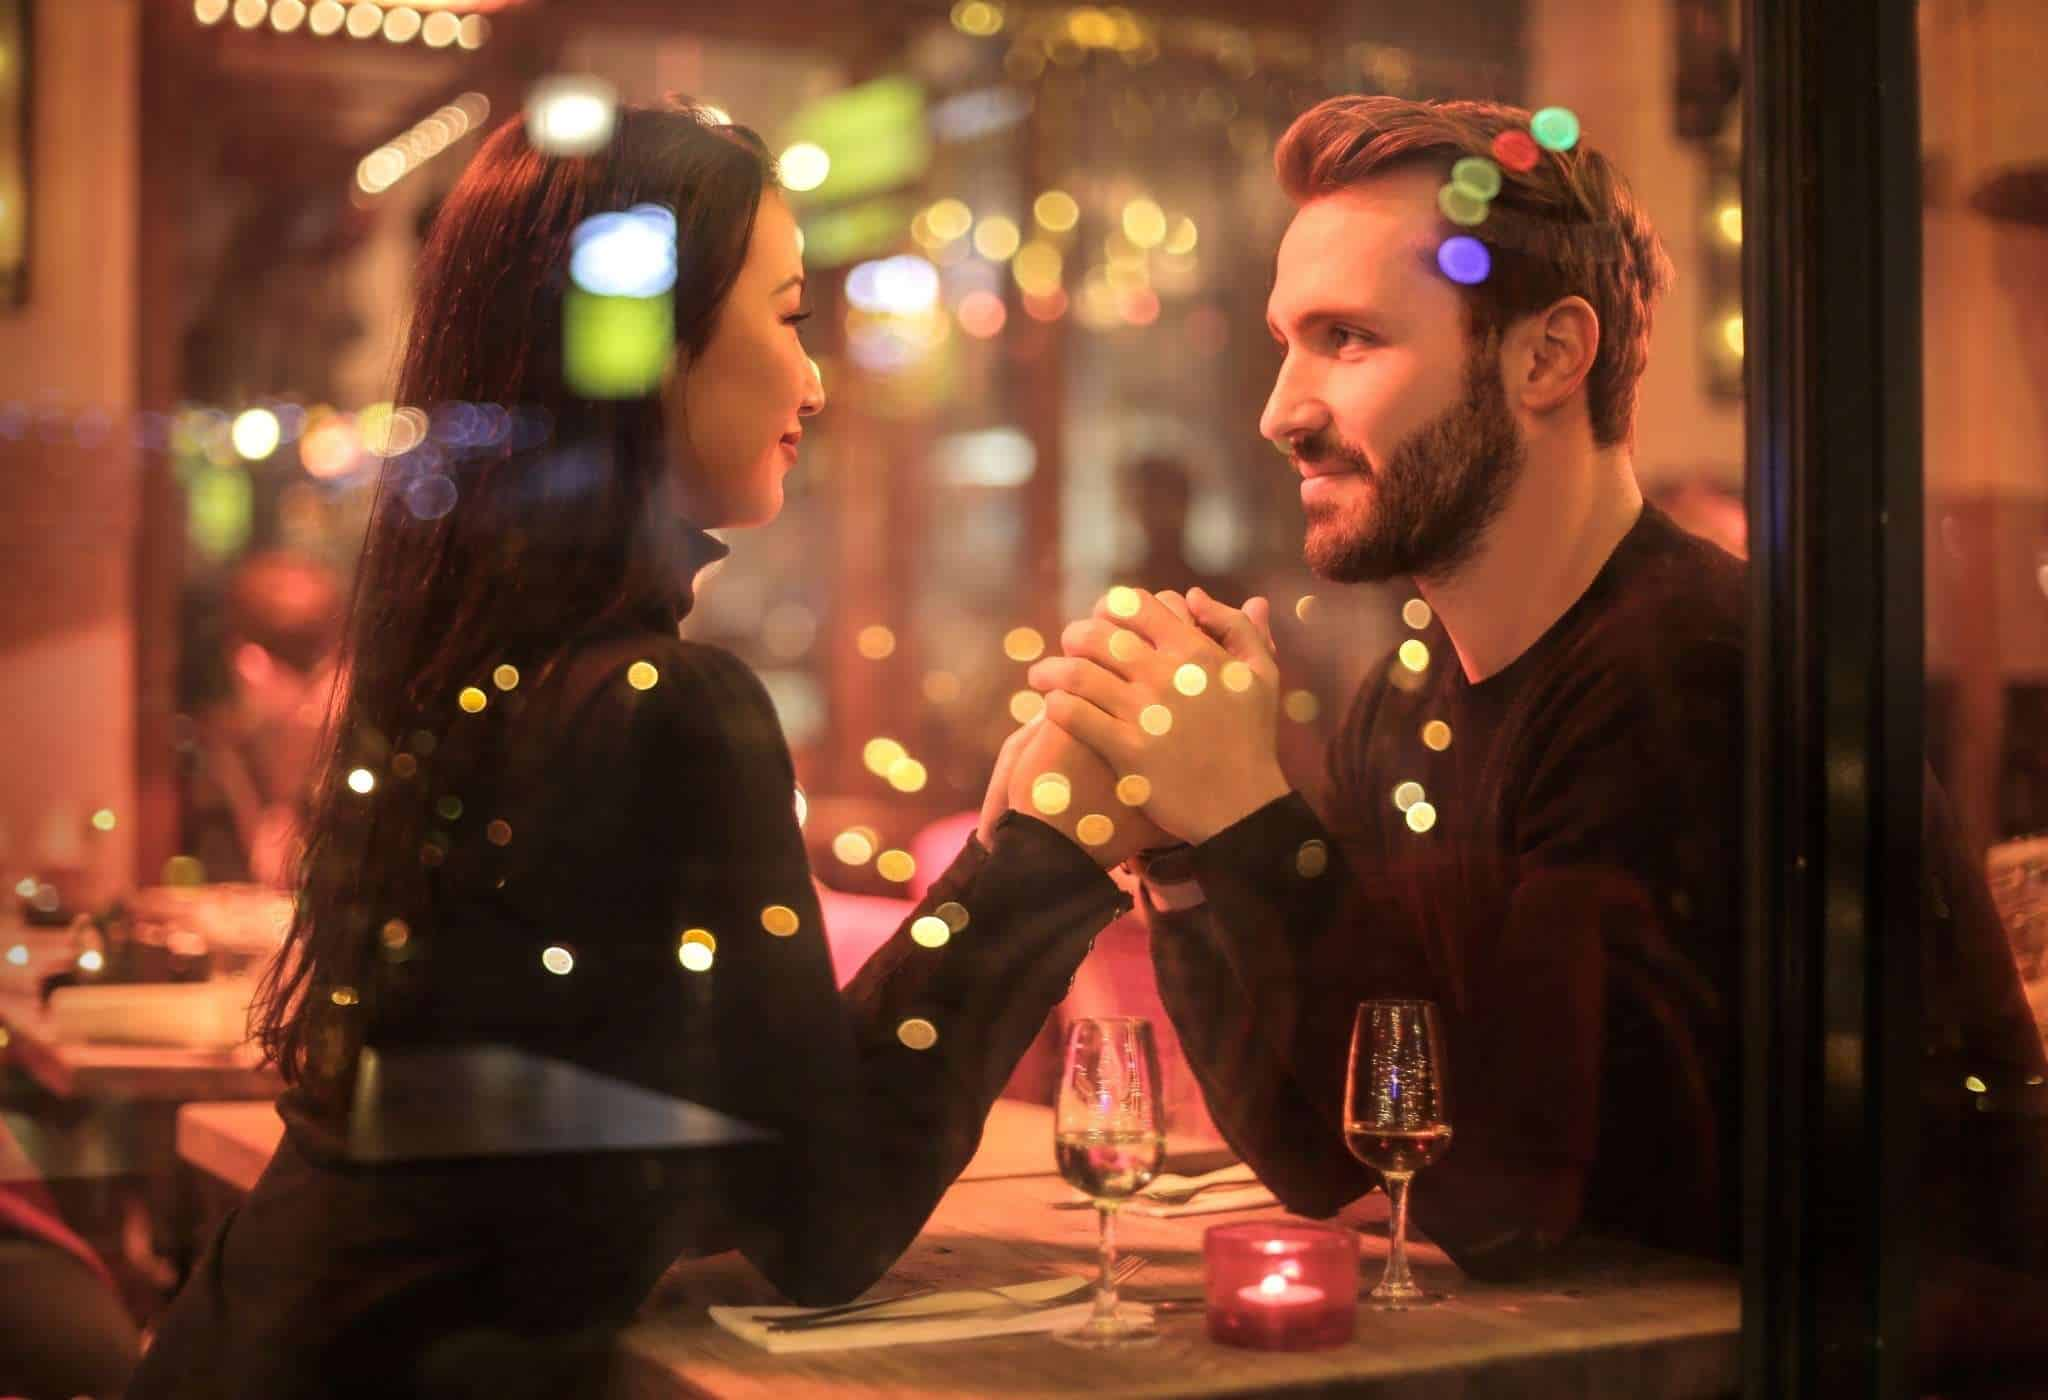 a man and woman making eye contact and smiling subtly